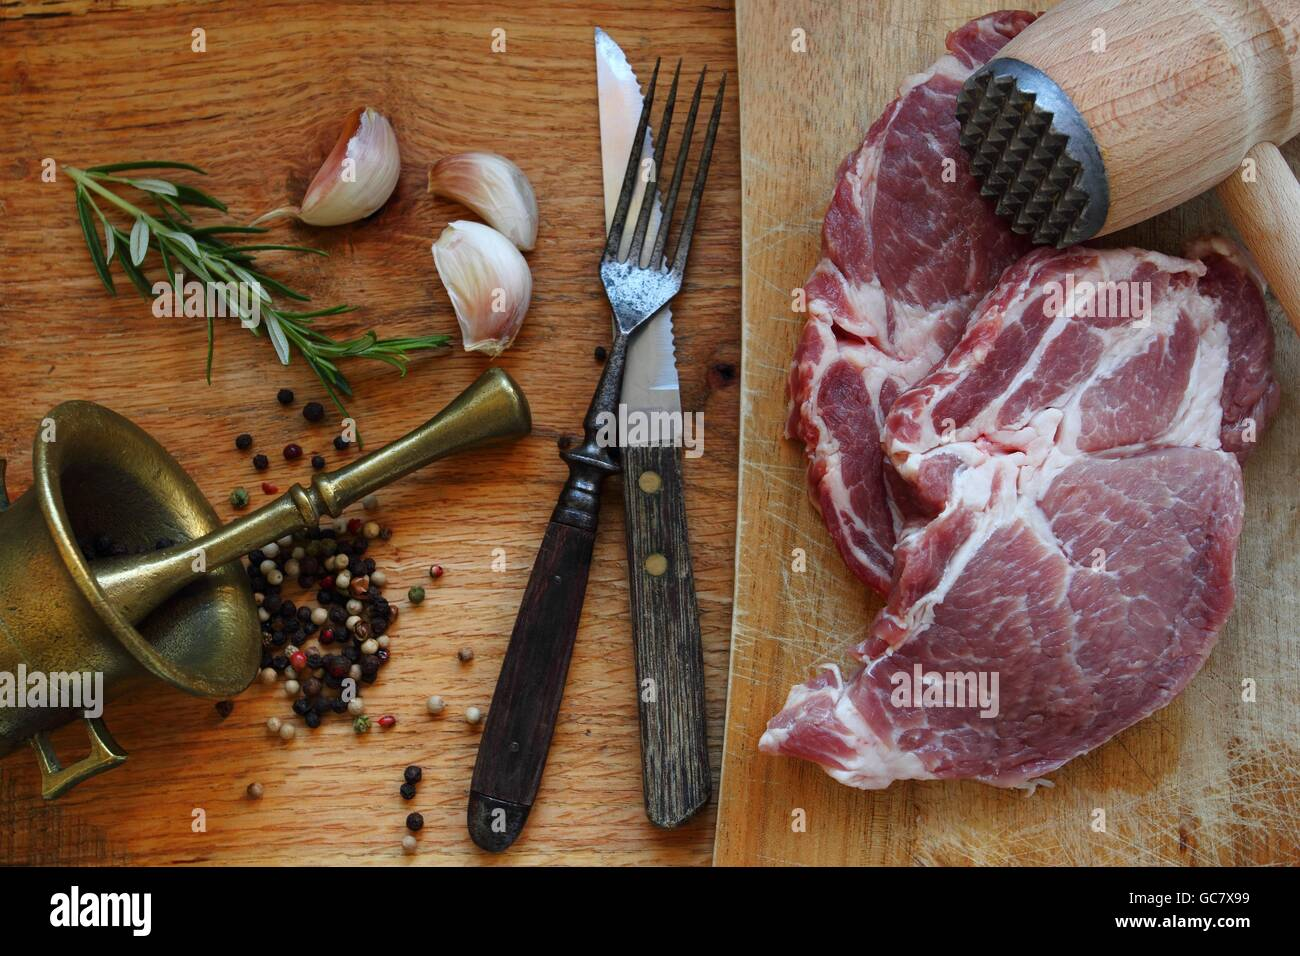 Raw meat. Pork steak with herbs - Stock Image